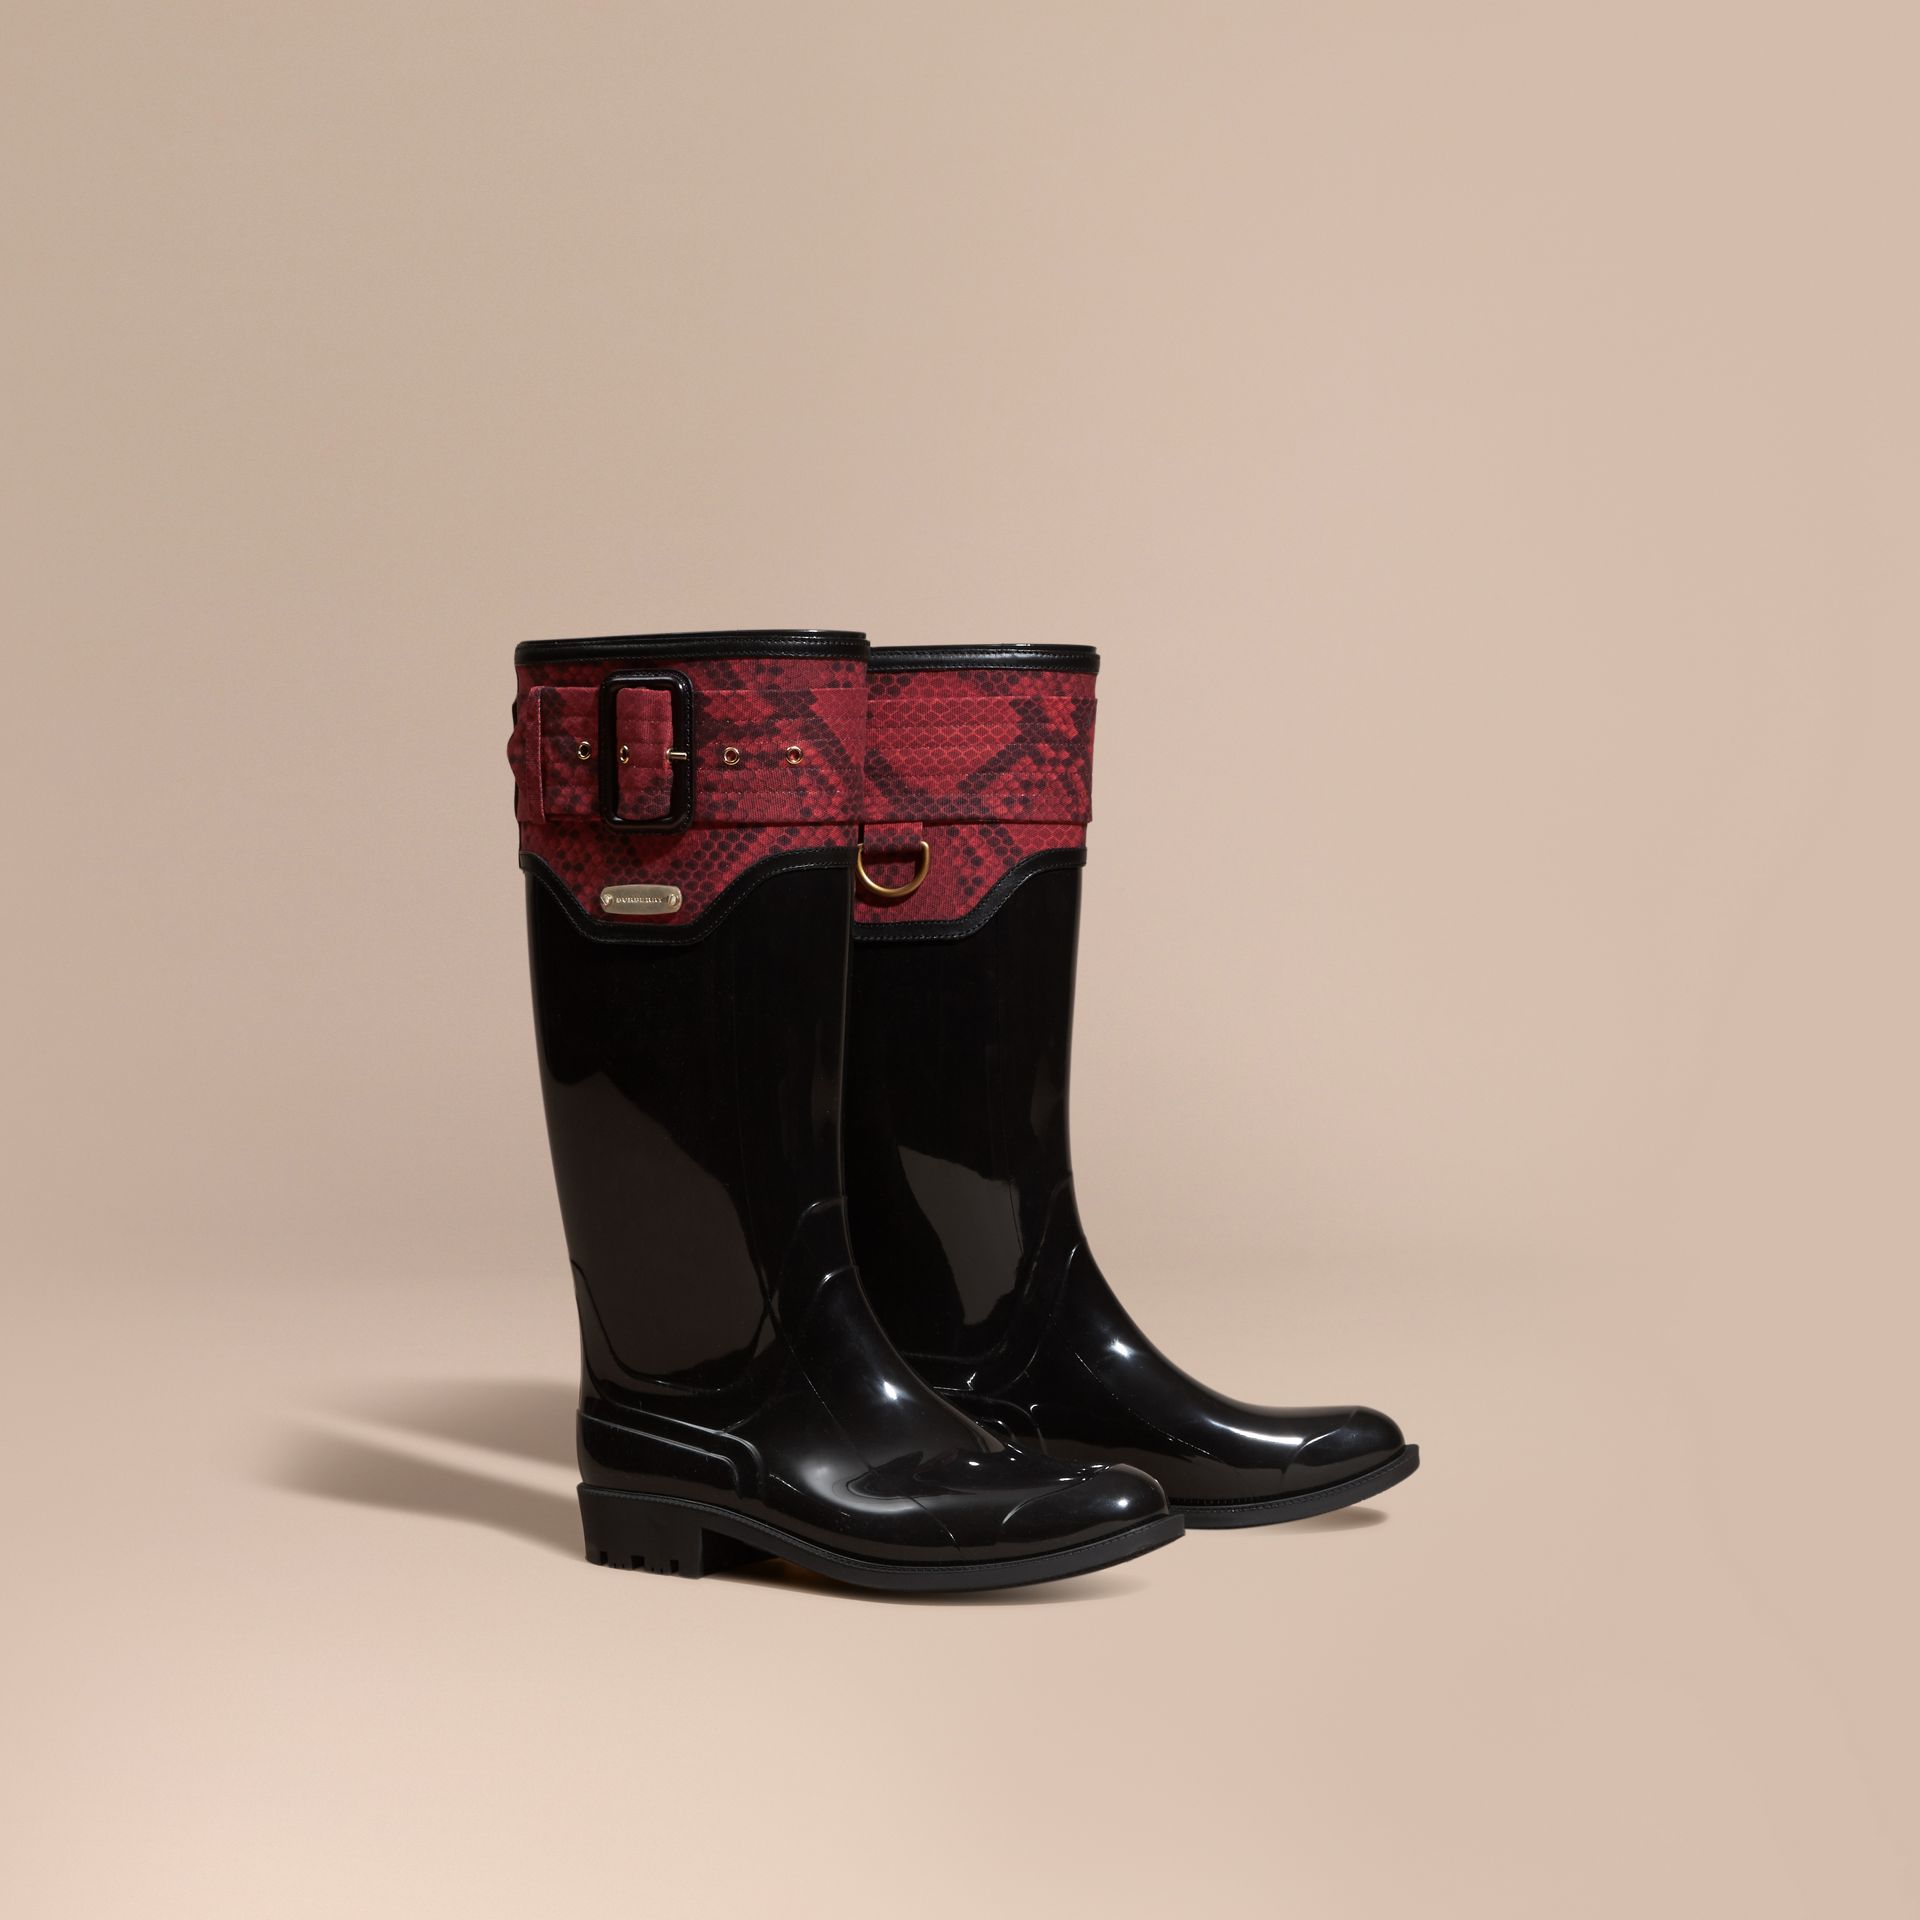 Black/windsor red Python Print Detail Rain Boots Black/windsor Red - gallery image 1